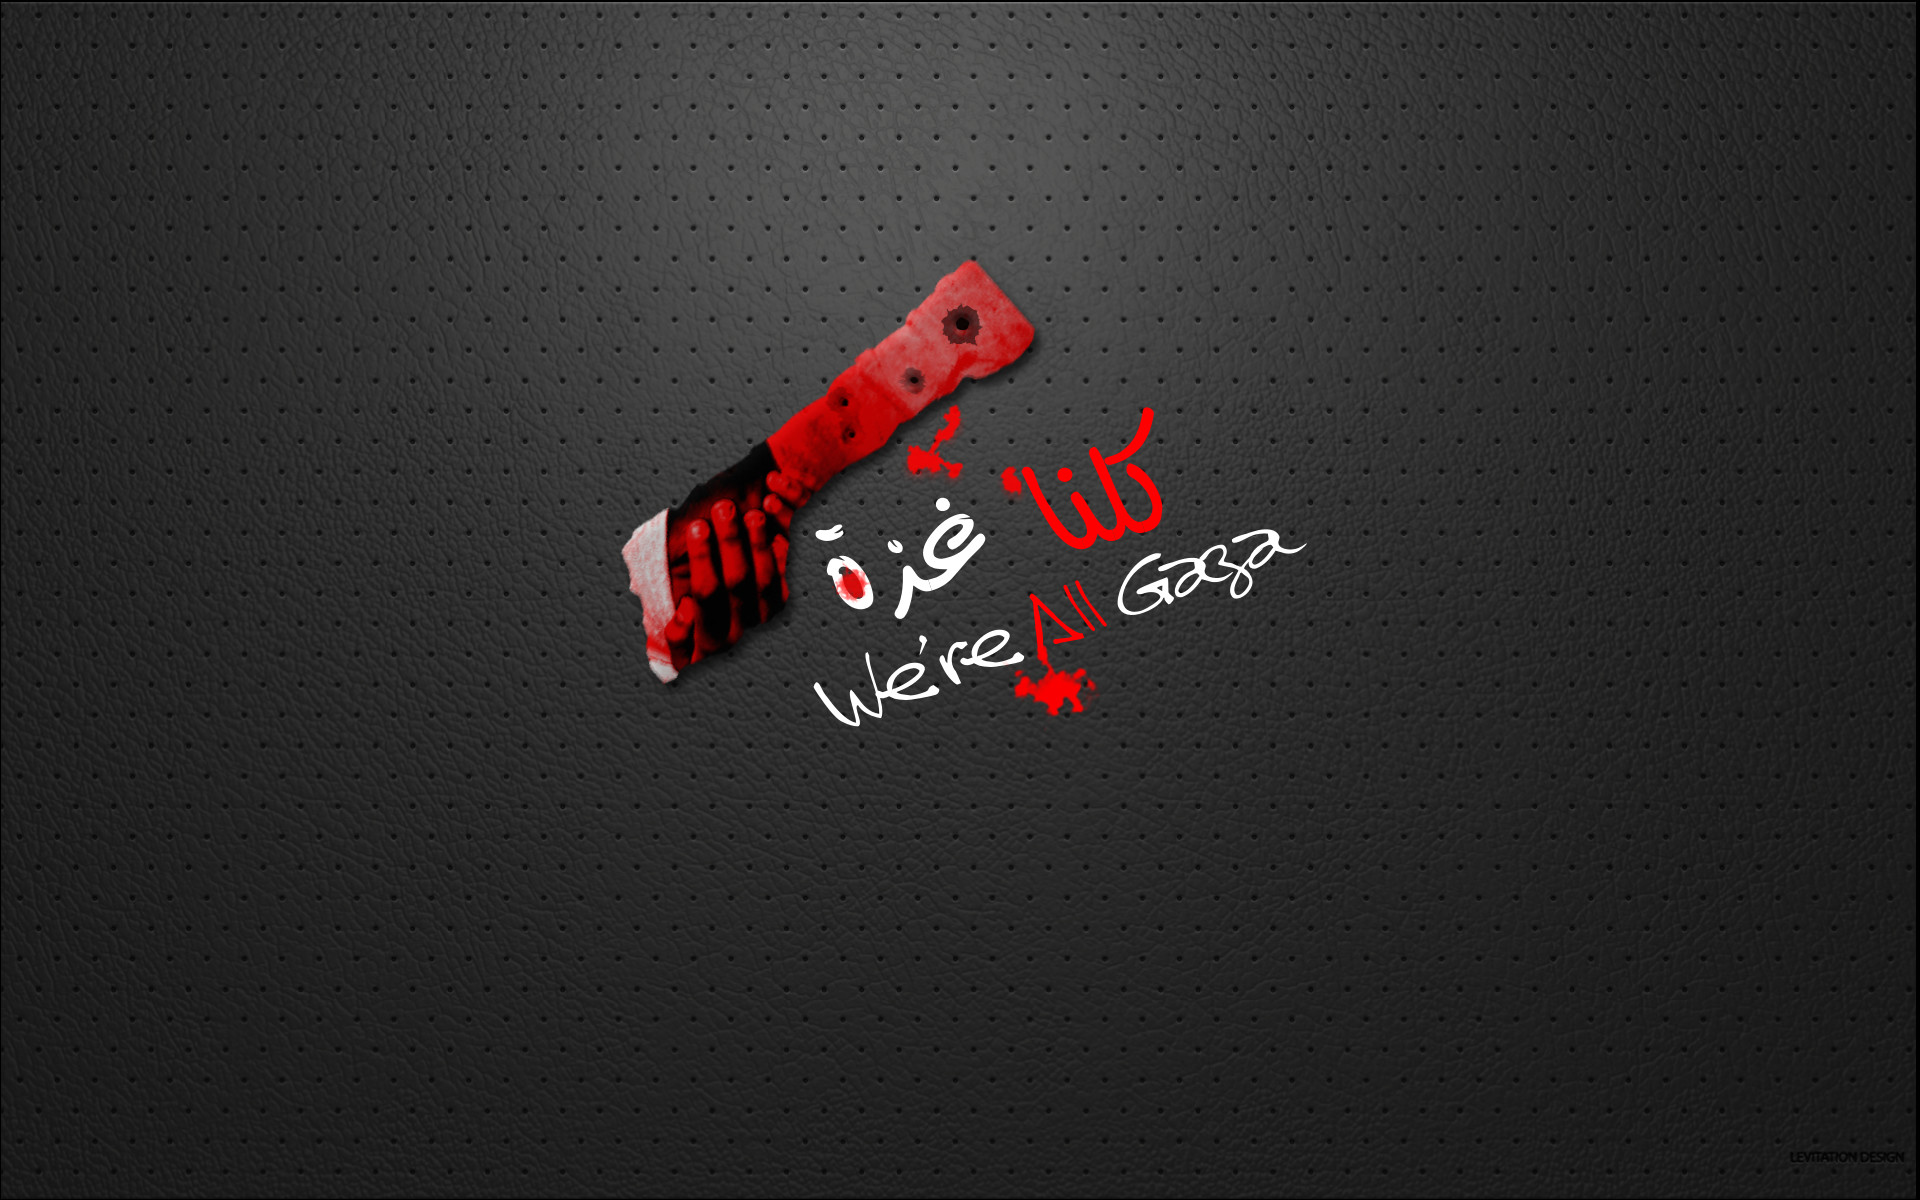 1920x1200 1194x793 Save Palestine 2015 Wallpapers - Wallpaper Cave